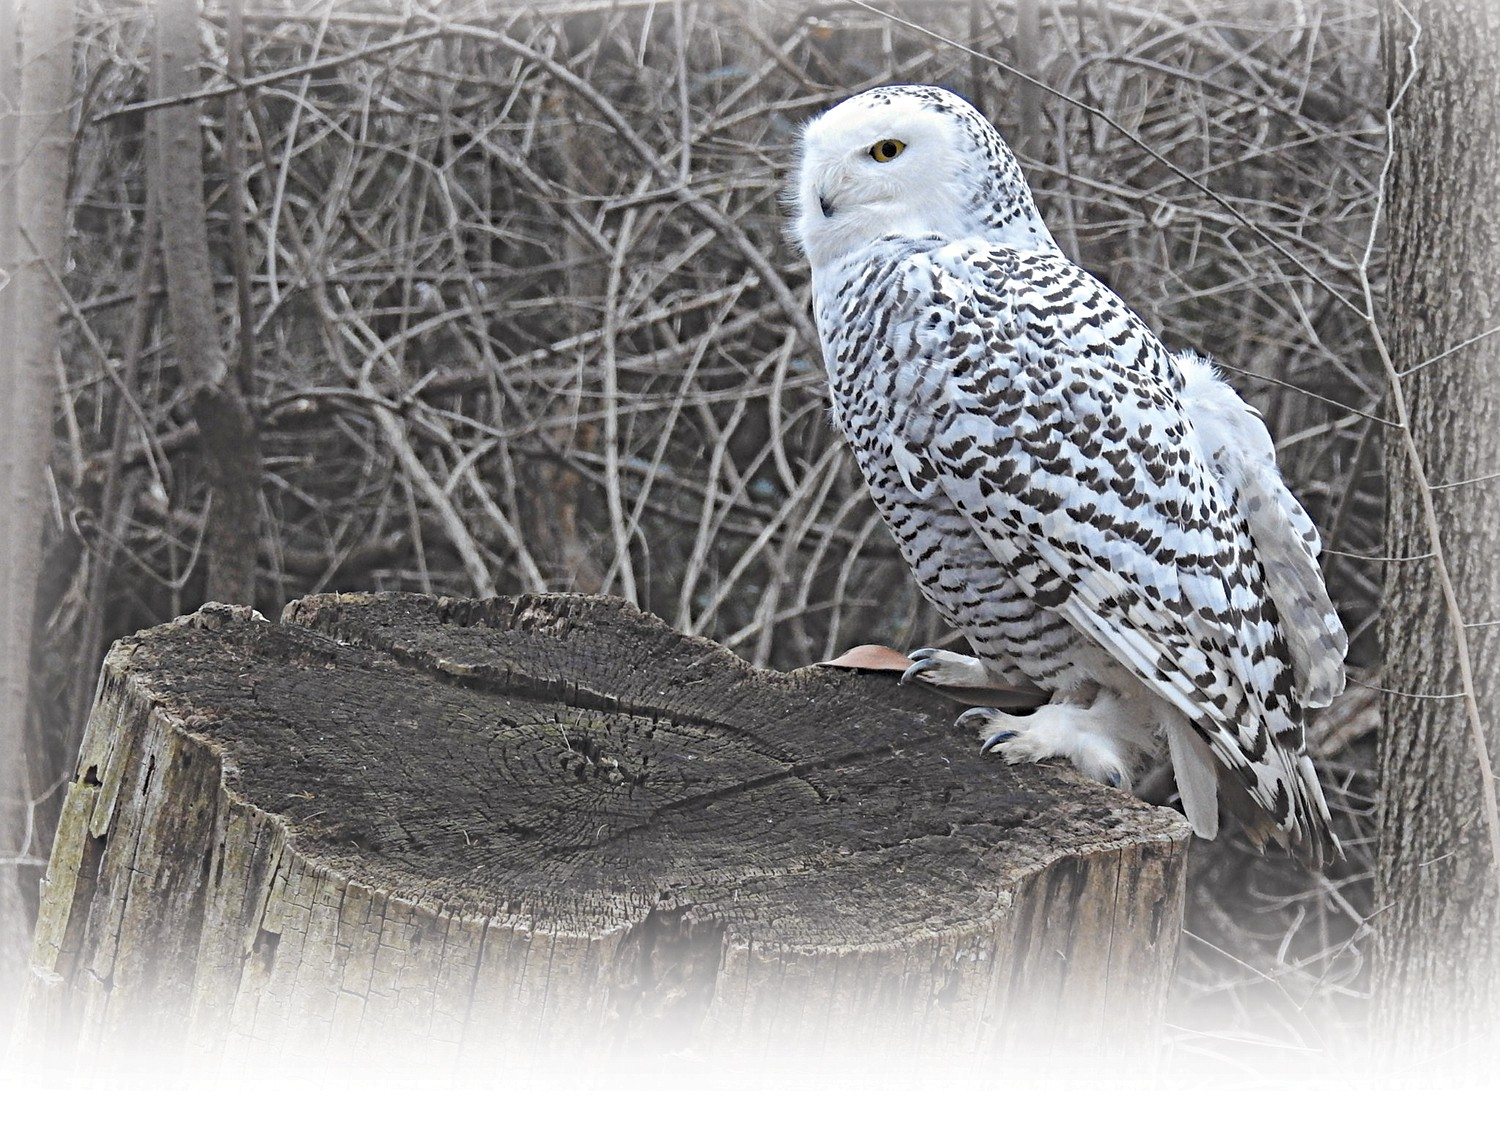 how to catch a glimpse of snowy owls and their feathery brethren in